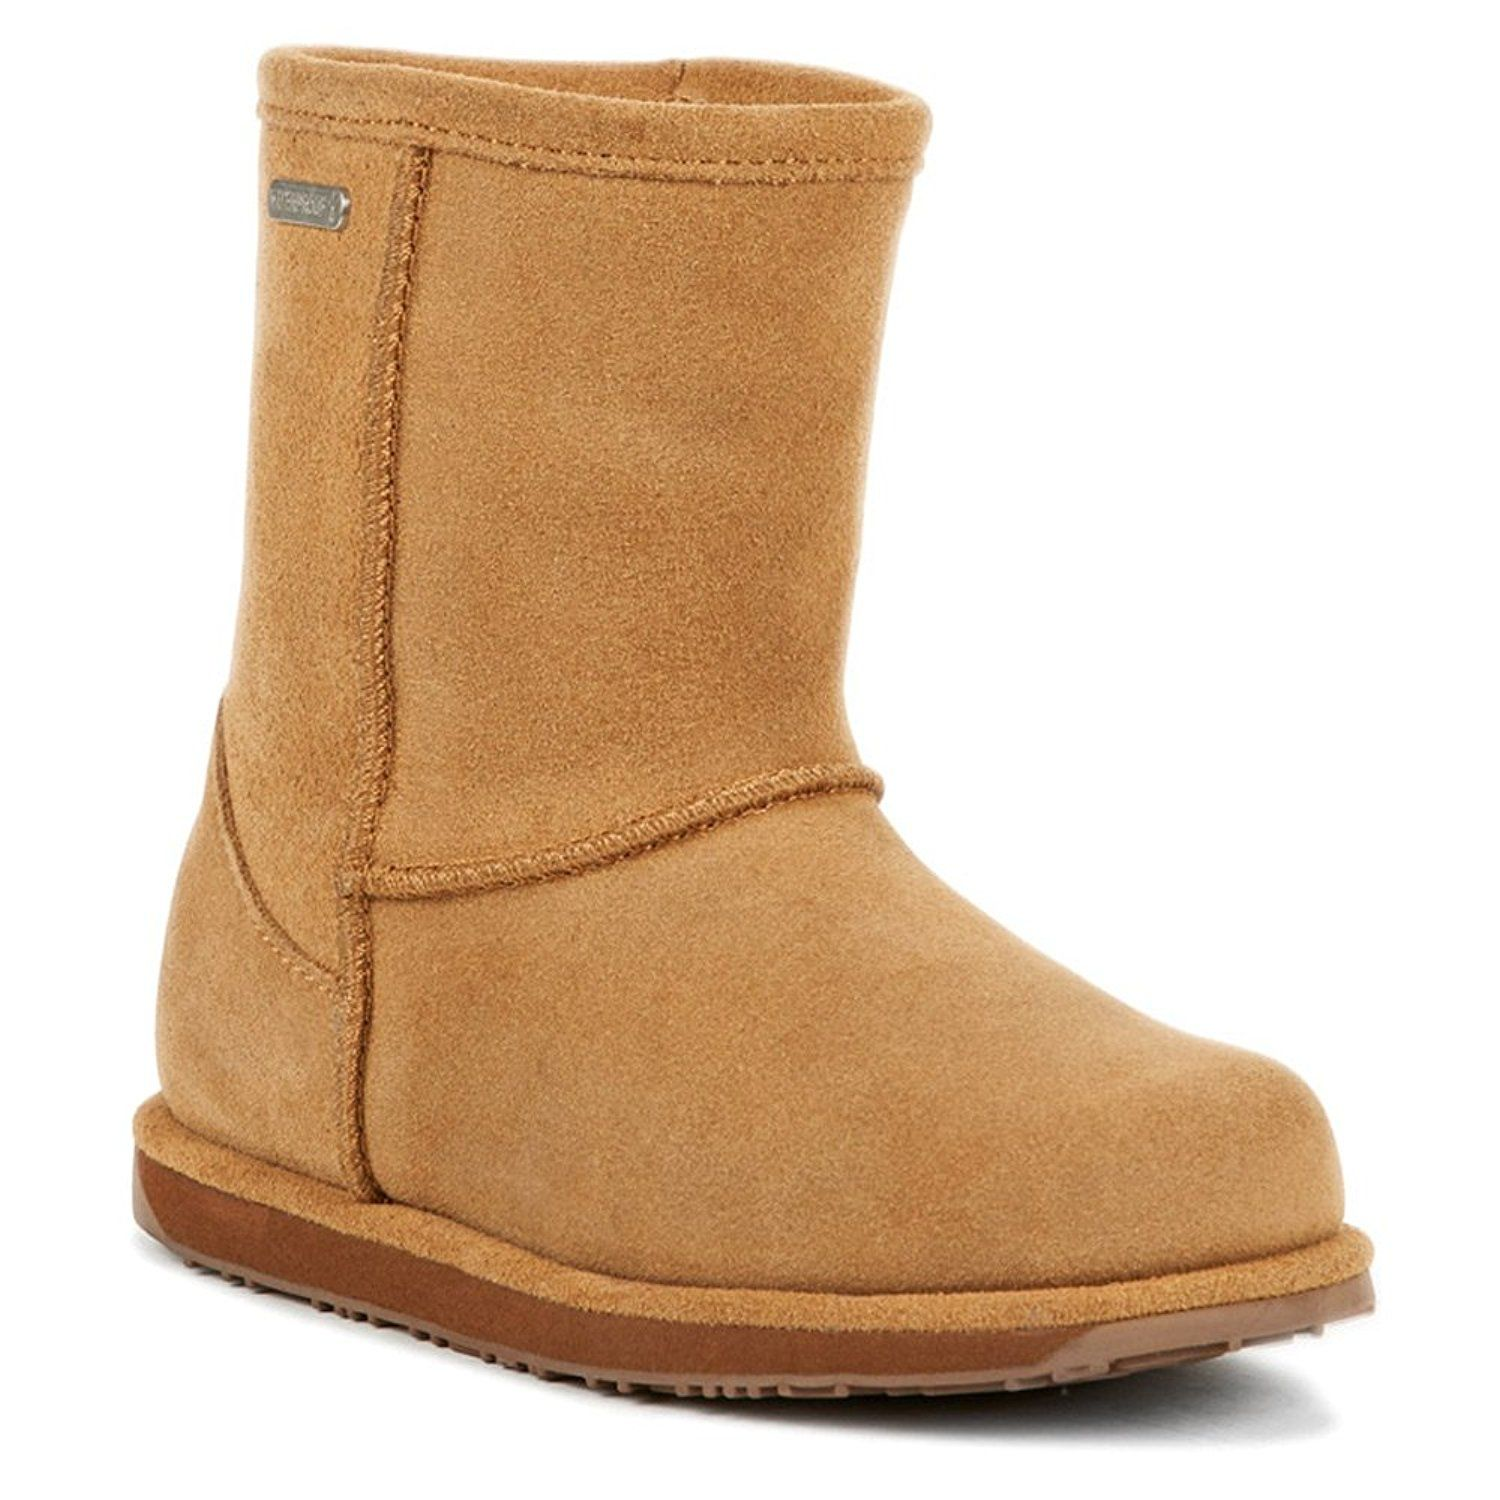 b0df01fac0e EMU Brumby Lo Boot - Girls' Chestnut, 3.0 *** Don't get left behind ...